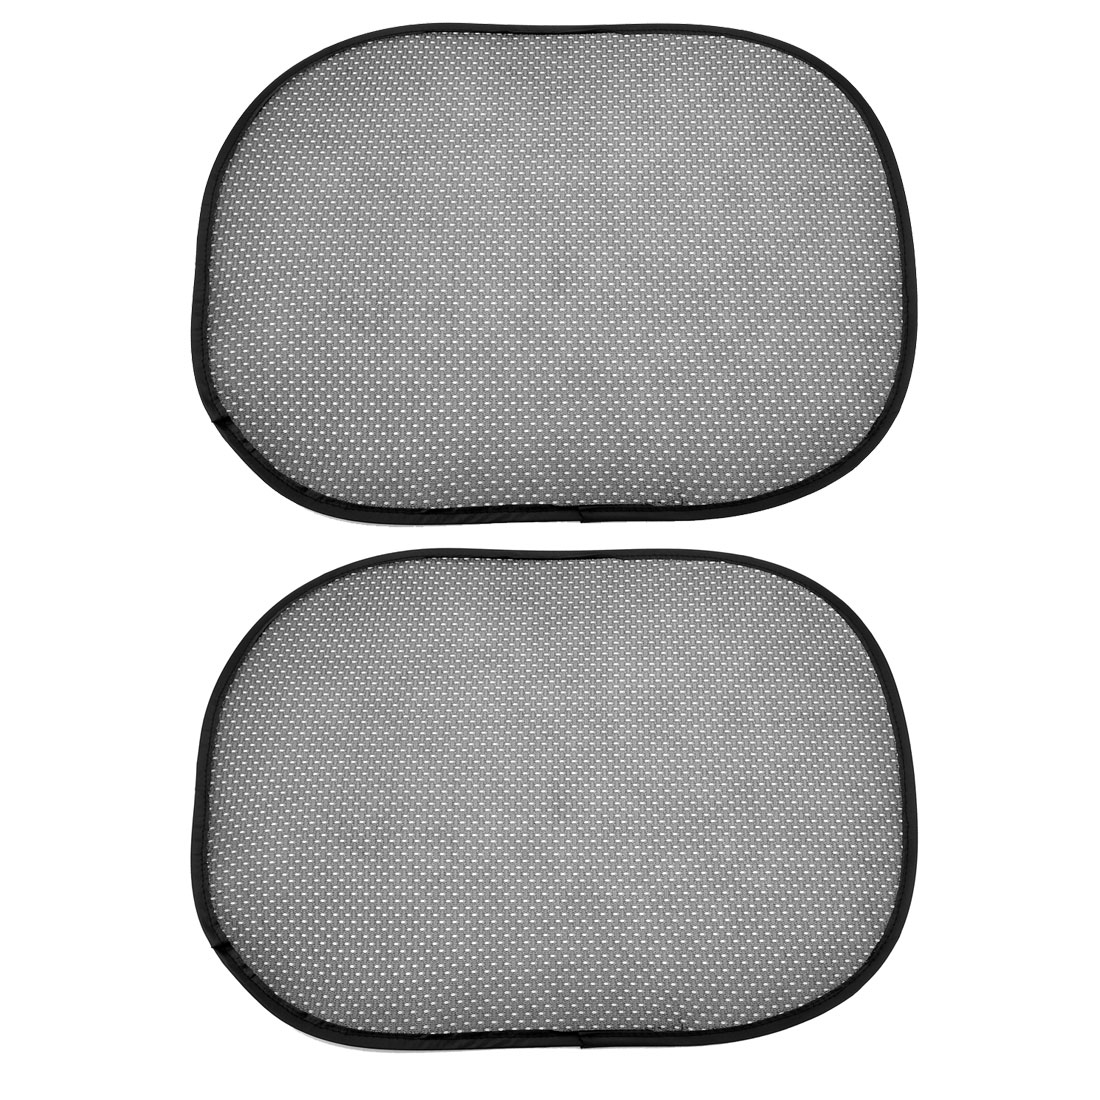 2 Pcs Car Nylon Mesh Window Sunshade Sun Shade Cover Black w Suction Cup